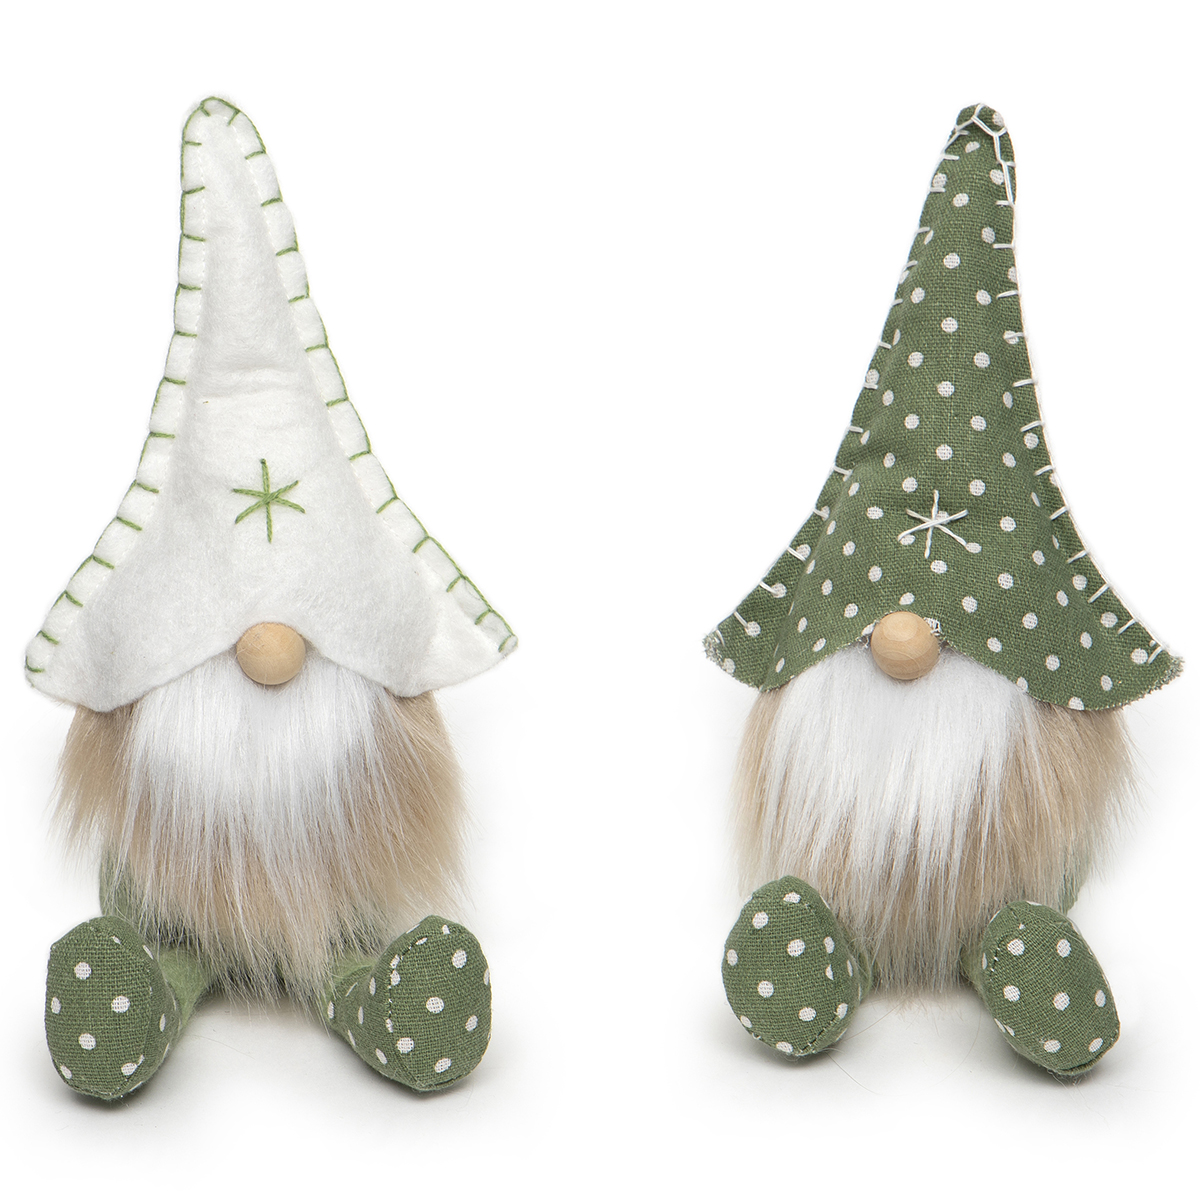 PINDOT GNOME WITH SNOWFLAKE, STITCHING,